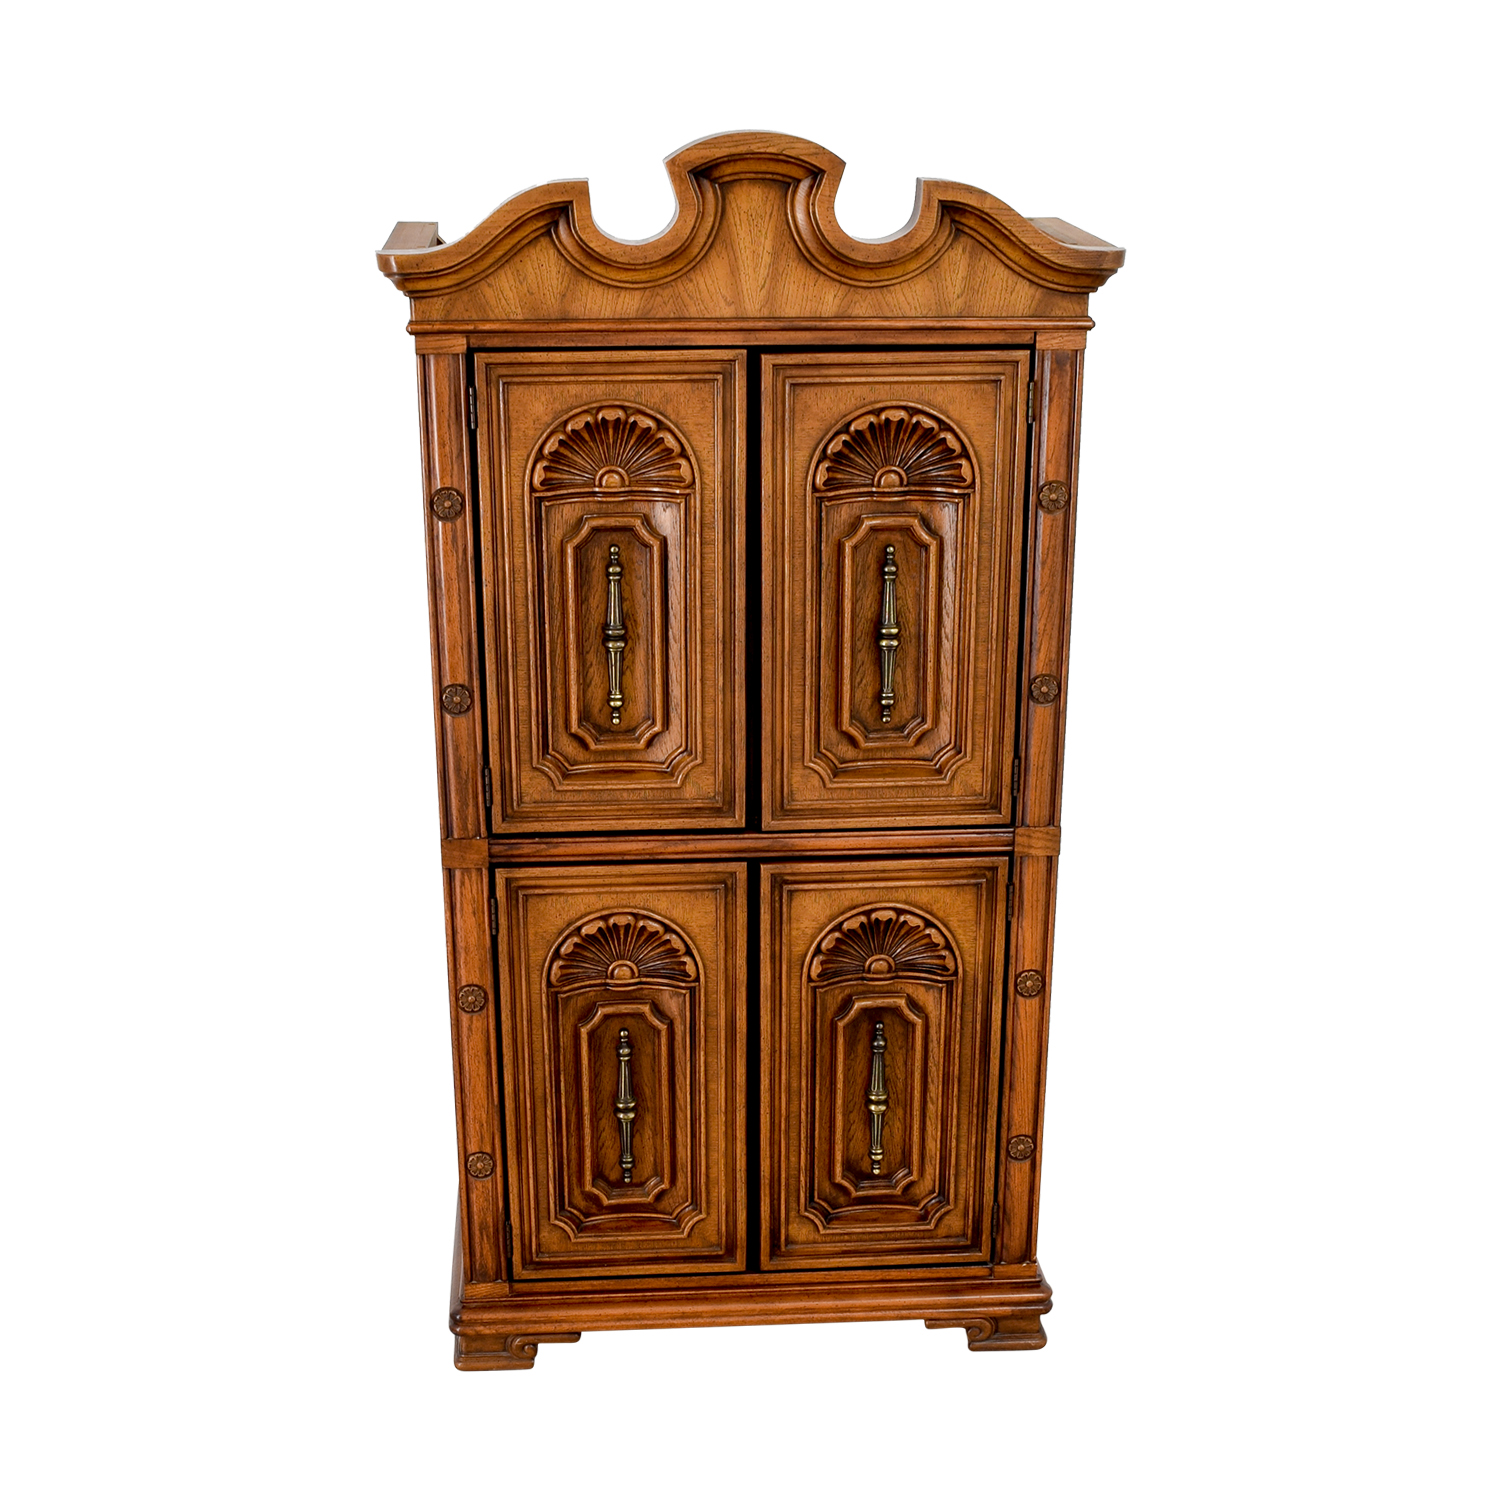 Seaman's Carved Wood Armoire sale